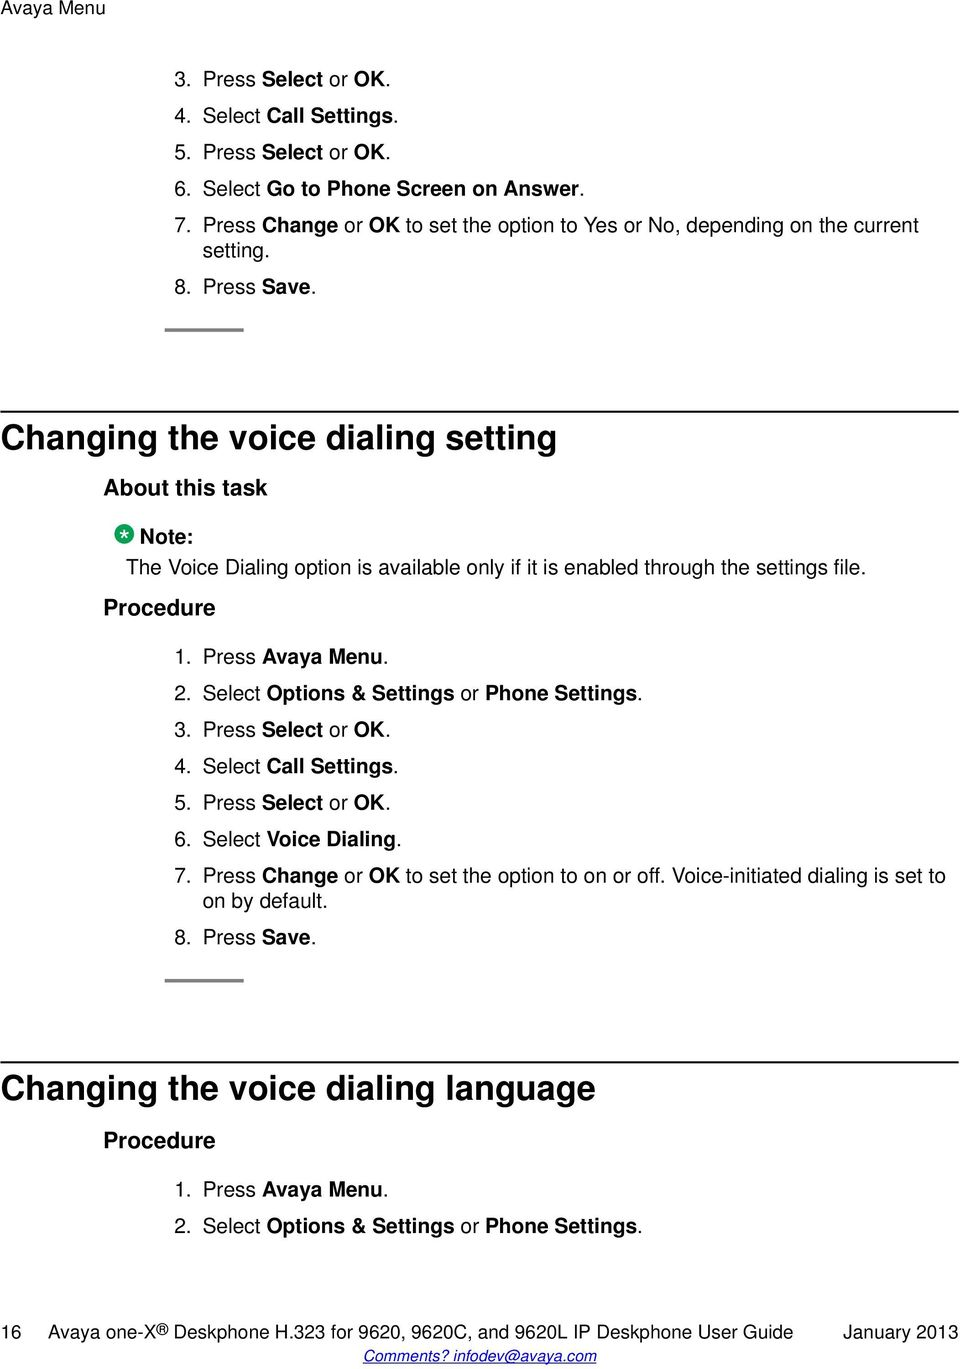 Changing the voice dialing setting Note: The Voice Dialing option is available only if it is enabled through the settings file. 1. Press Avaya Menu. 2. Select Options & Settings or Phone Settings. 3.